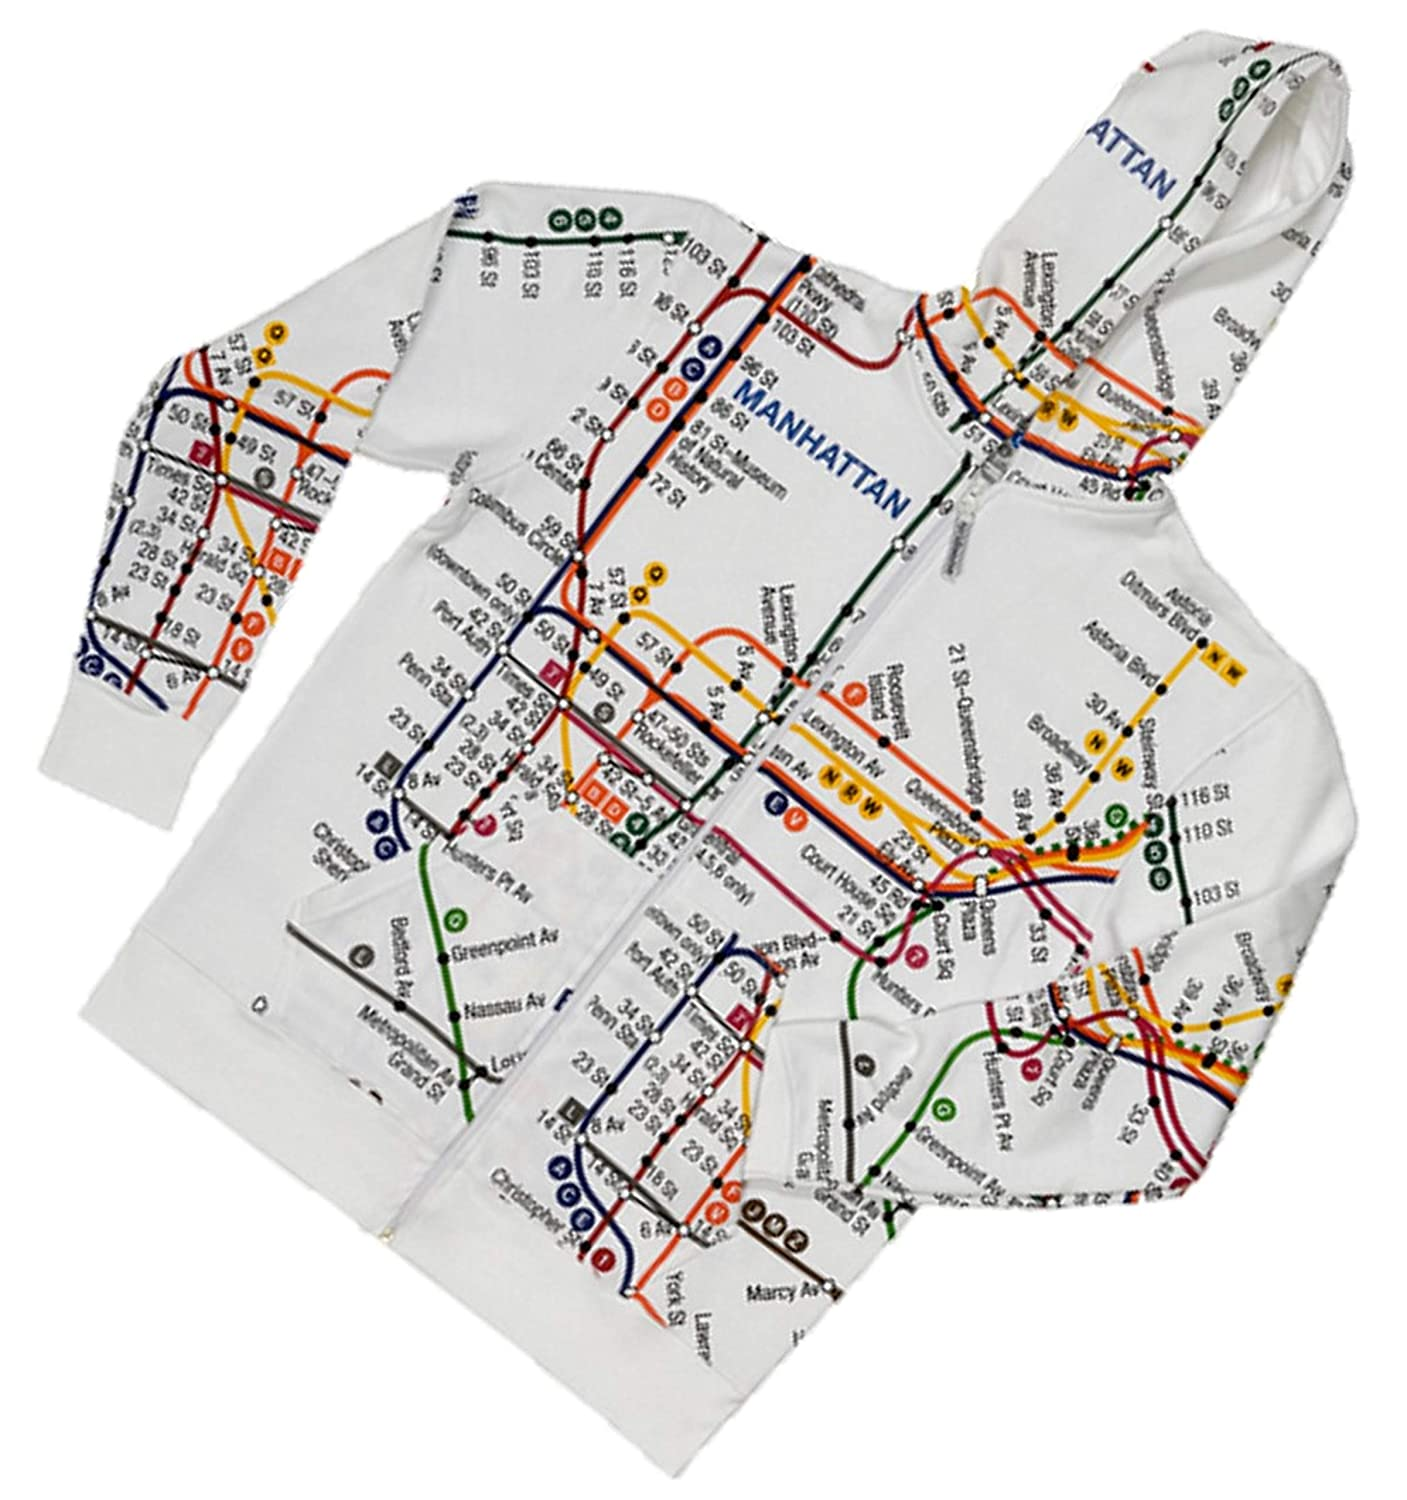 Amazon.com: NYC Subway Line Men's Big White Map Hoo: Clothing on manhattan map, queens map, mta map, nyc high line, moscow metro, new york map, shanghai metro, nyc boroughs, nyc maps printable, grand central terminal, long island rail road, nyc street map.pdf, trains map, the bronx, bronx map, beijing subway, brooklyn map, ny map, central park map, central park, tokyo subway, nyc neighborhood map, sub way map, downtown nyc map, m60 bus route map, lirr map, washington metro, transit map, rapid transit, nyc parks map,